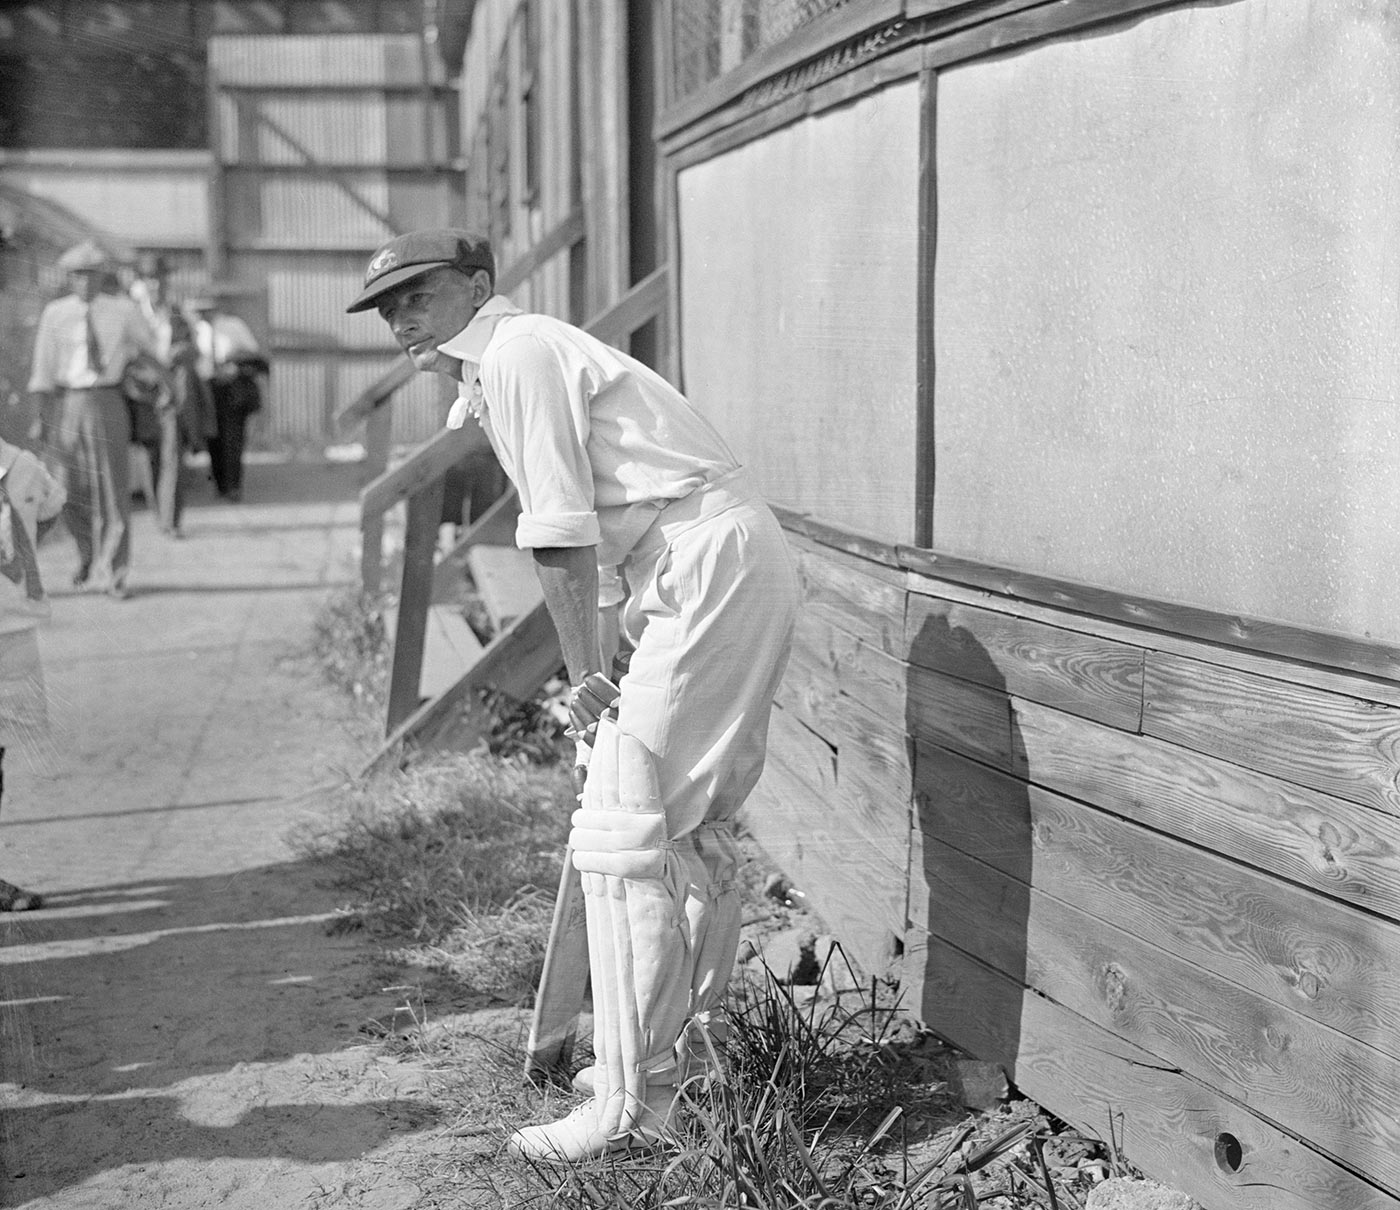 On the sidelines of a match against a West Indian side in New York, during Australia's tour of the USA in 1932